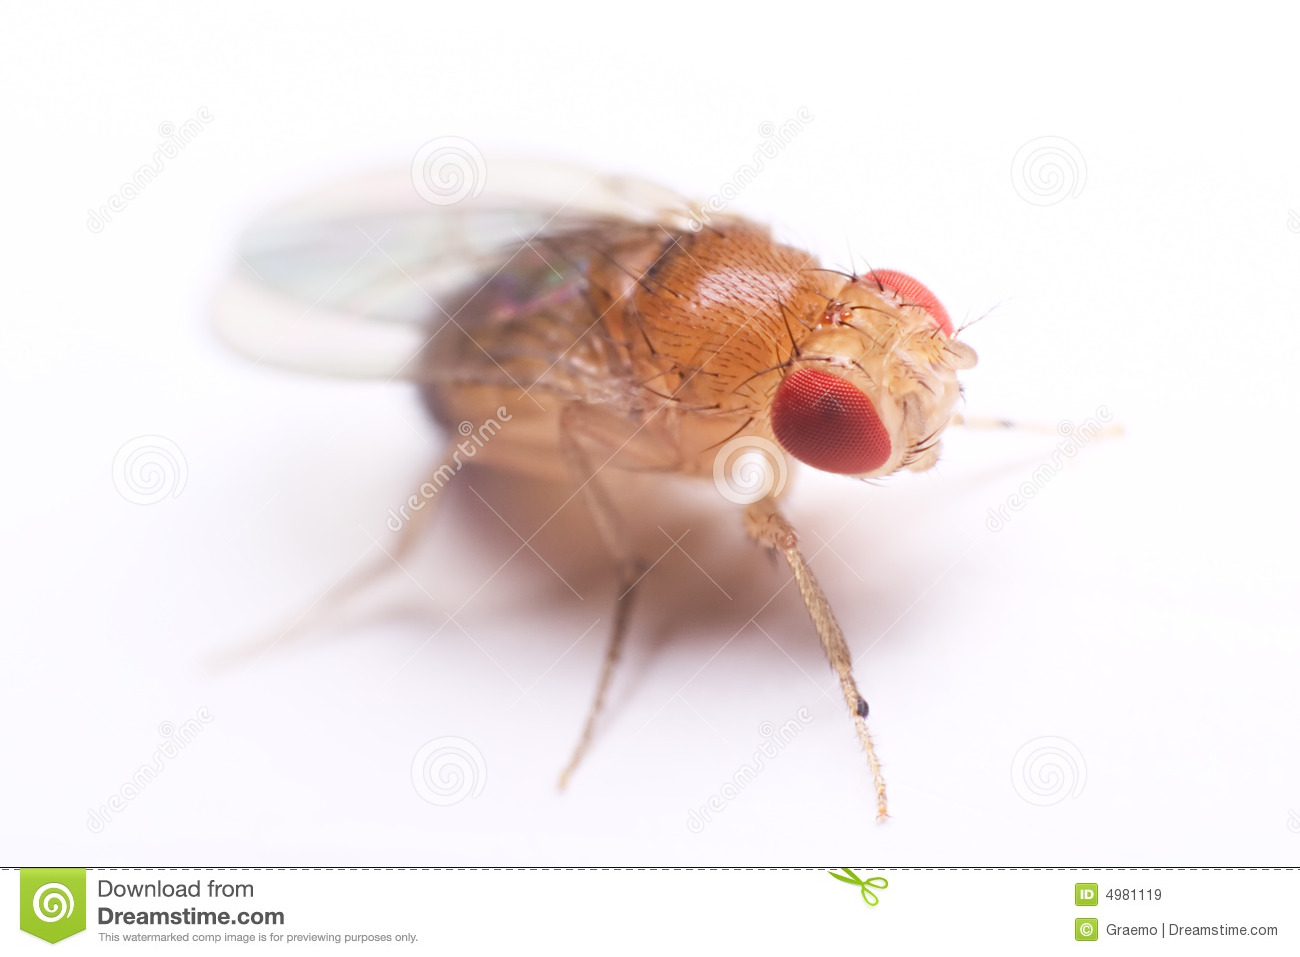 Image result for fruit fly images free